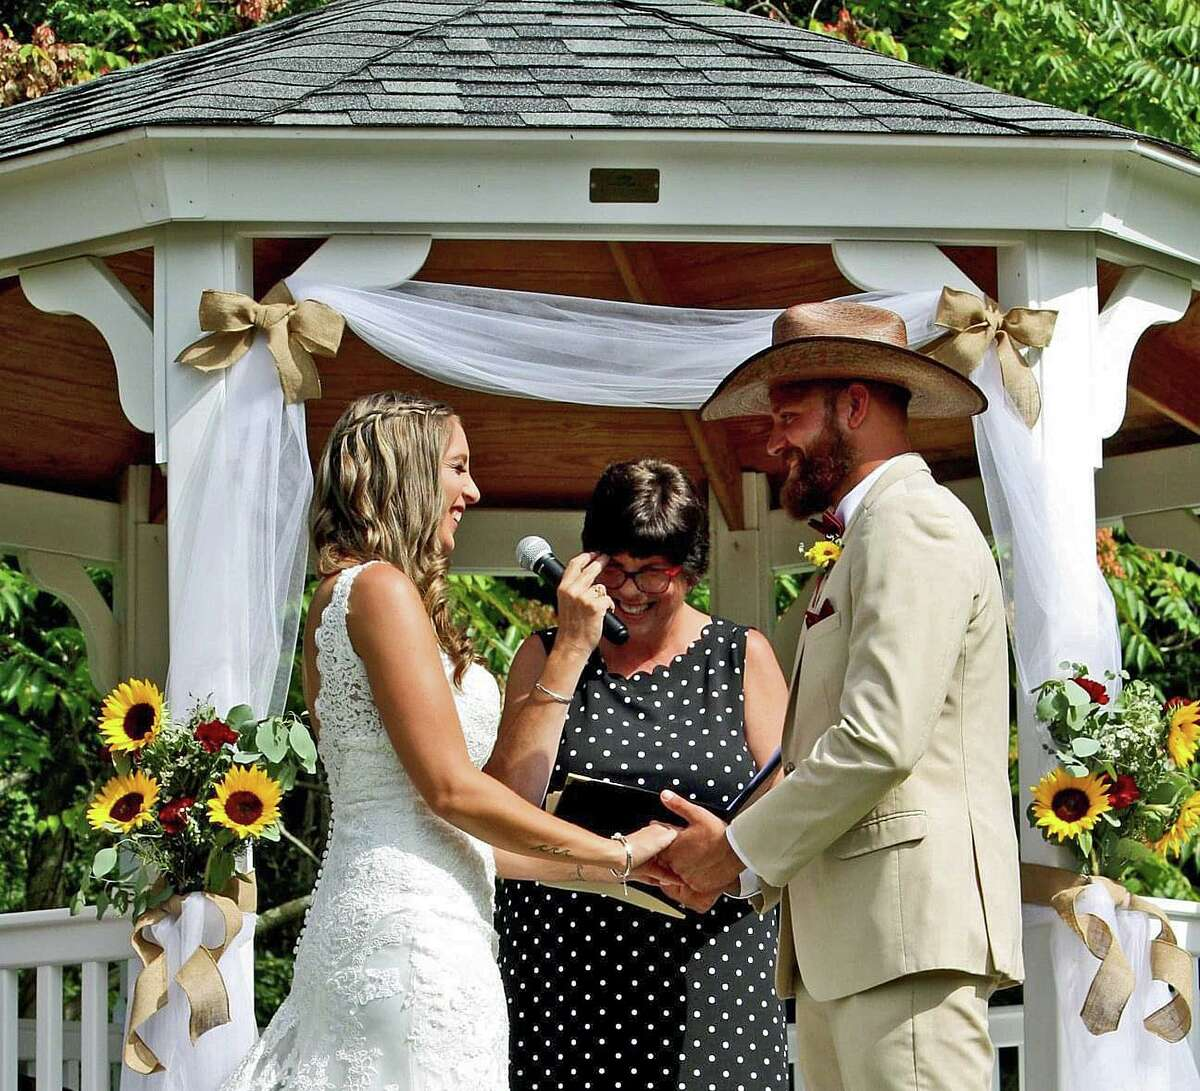 Mollie Hull and Kyle Hendrix exchange their wedding vows in front of the gazebo at the Martin-Bishop Memorial Field with Veronica Wallace officiating.